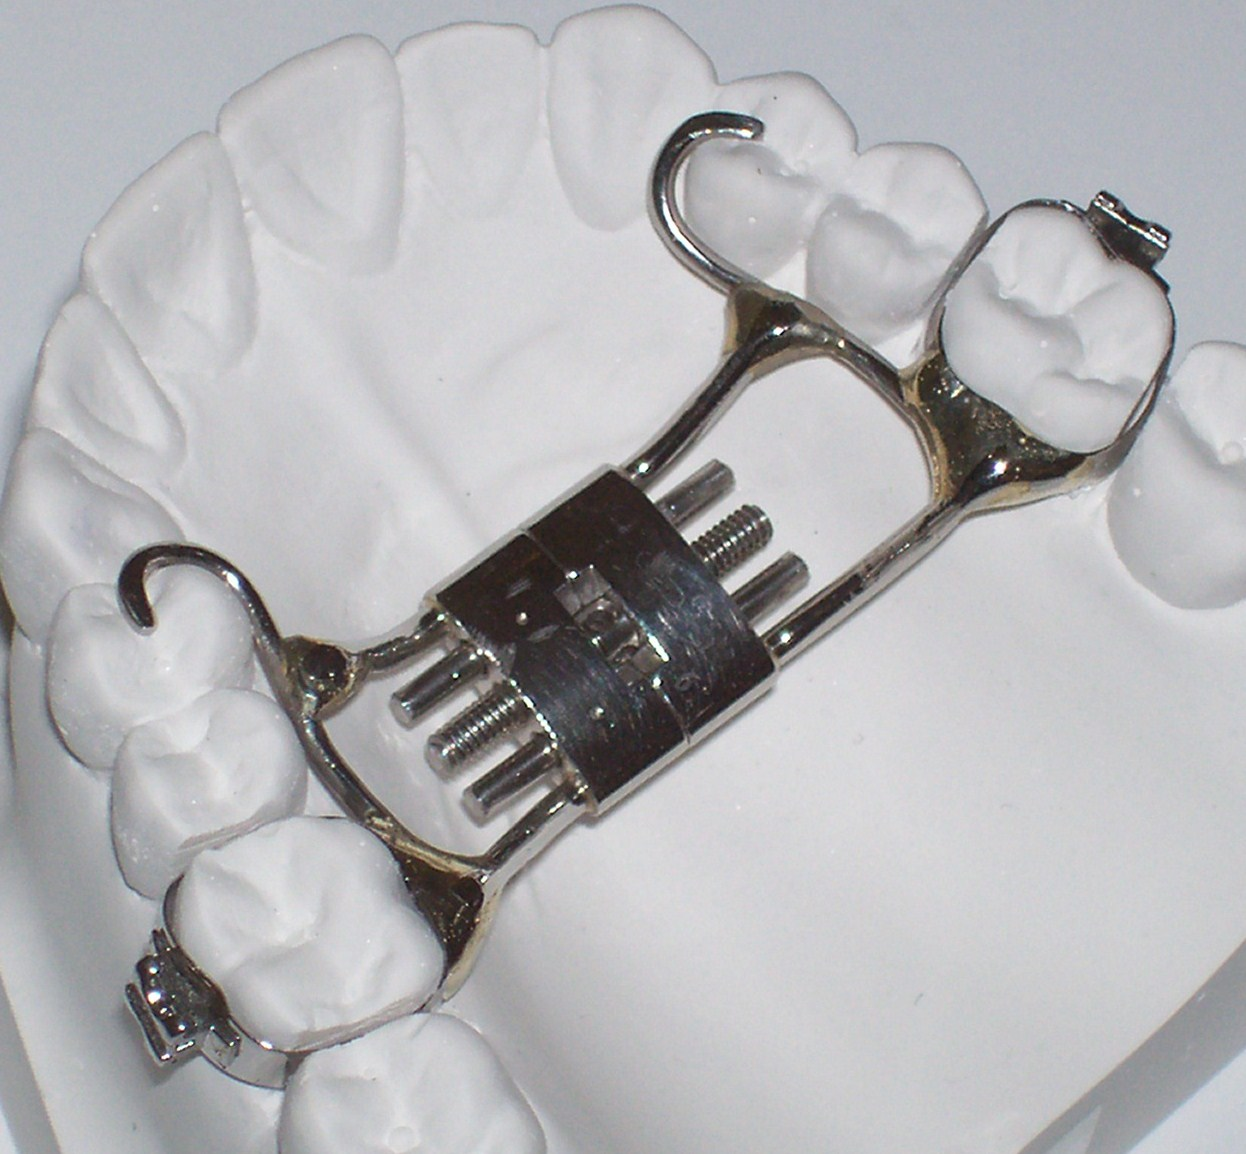 The palatal expander expands and makes your upper jaw wider